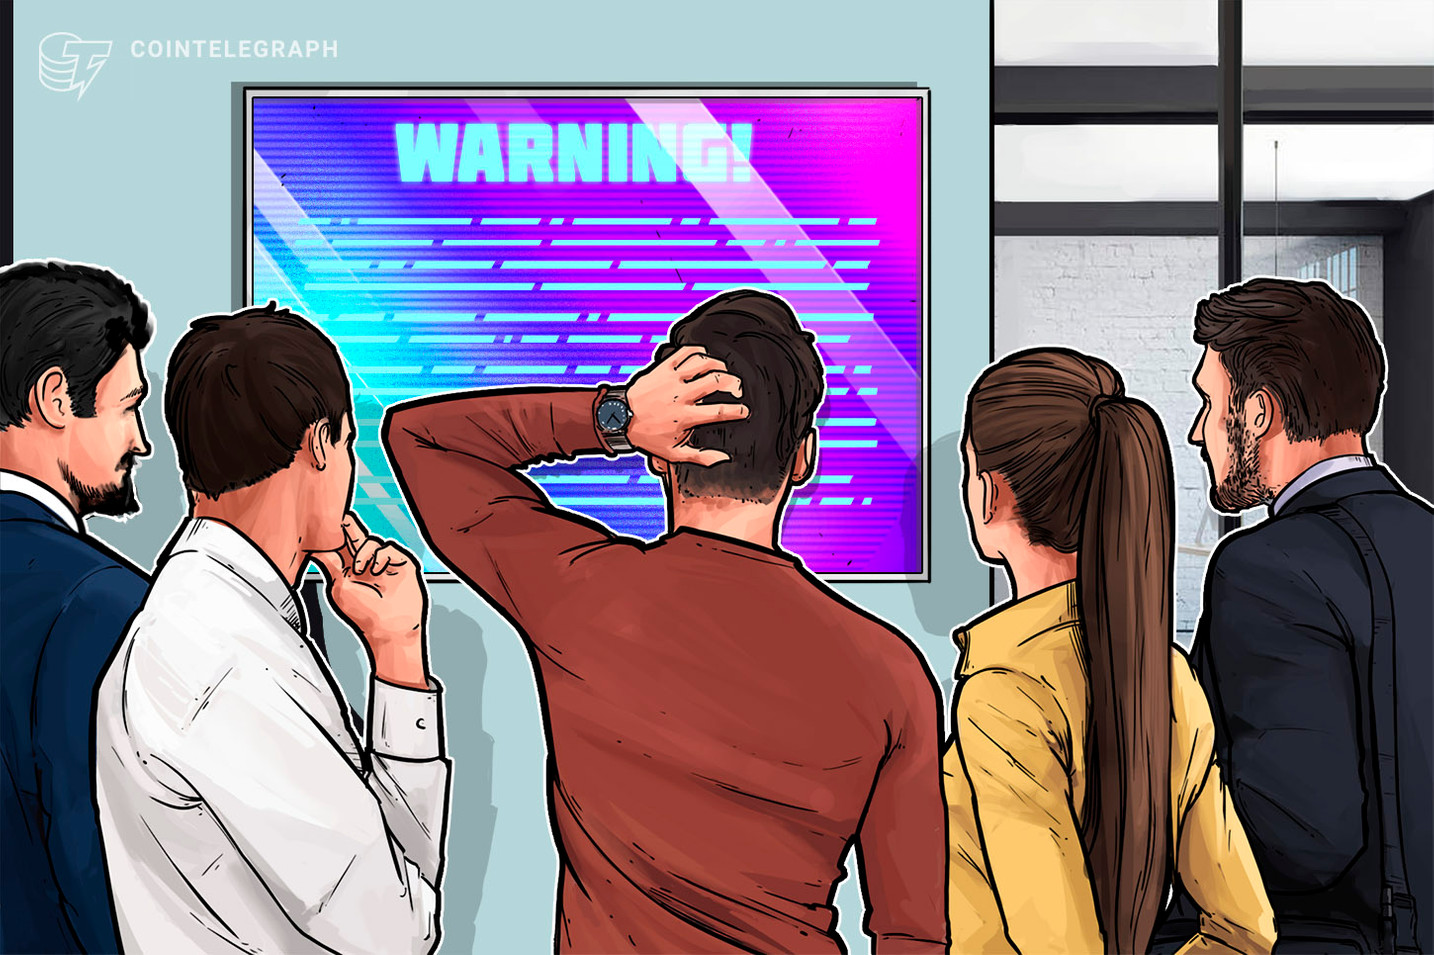 Texas Regulator Warns of New Crypto Frauds Amid Coronavirus Outbreak